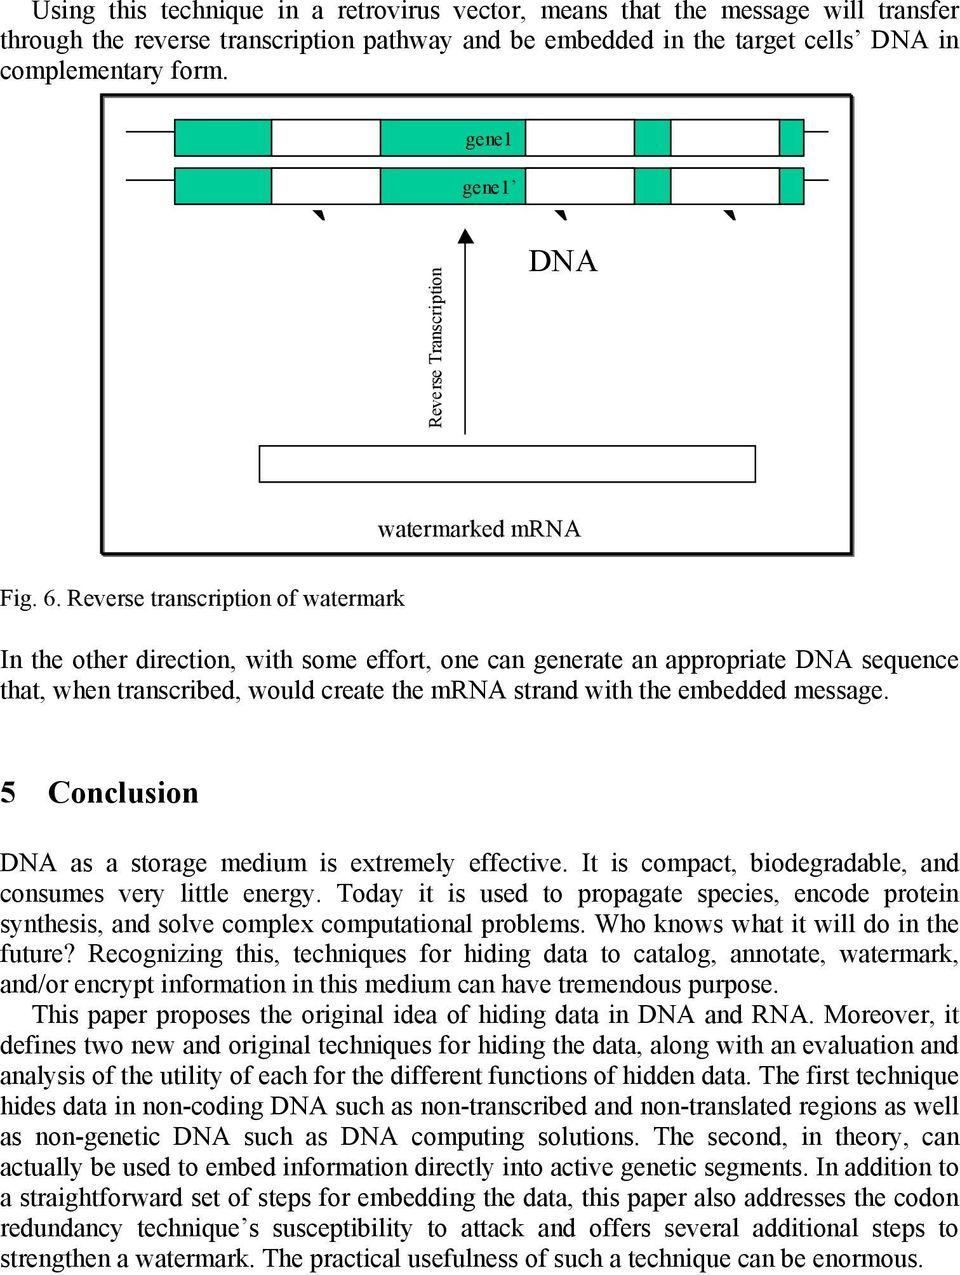 Reverse transcription of watermark In the other direction, with some effort, one can generate an appropriate DNA sequence that, when transcribed, would create the mrna strand with the embedded